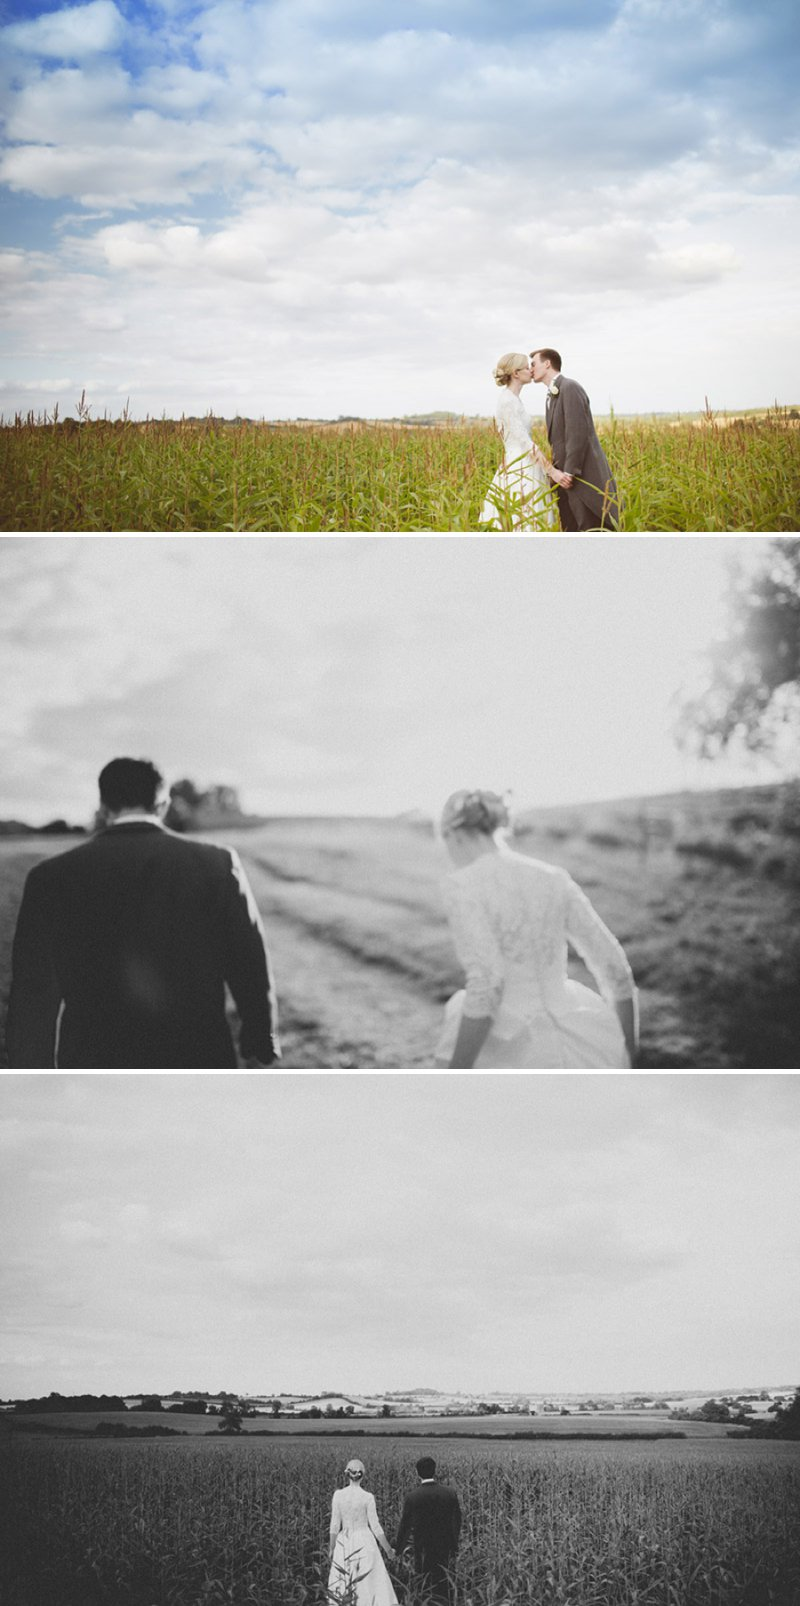 Rustic Wedding At Creslow Manor With Bride In Lace Paloma Blanca Gown With Groom In Morning Dress And Bridesmaids In Floral Print Dresses And Roses And Gypsophila In Bouquets Images By Joseph Hall 11